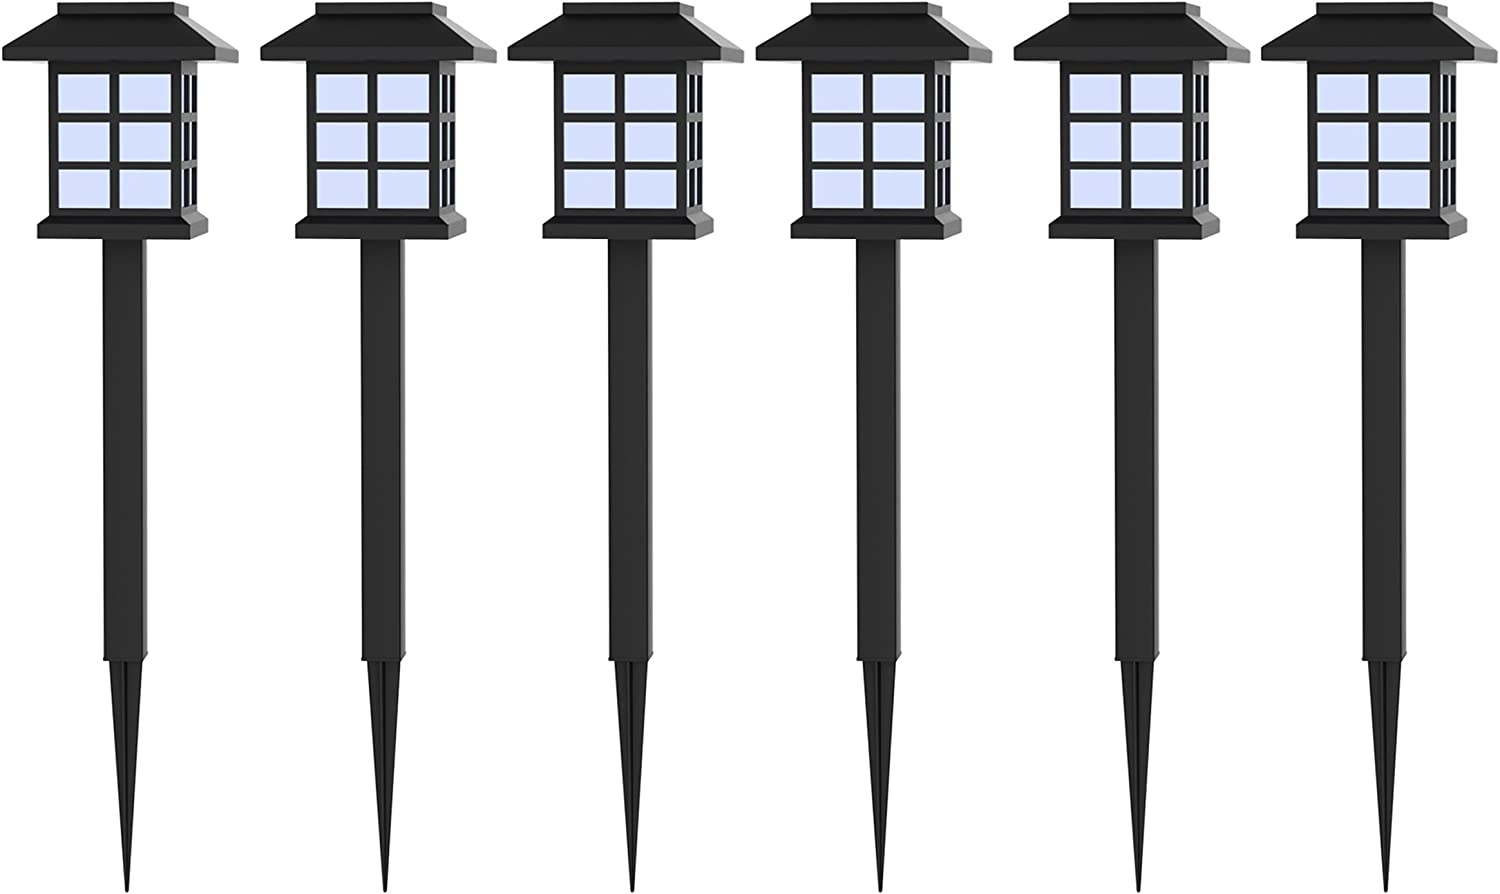 Solar Powered Lights (Set of 6)- LED Outdoor Stake Spotlight Fixture for Gardens, Pathways, and Patios by Pure Garden